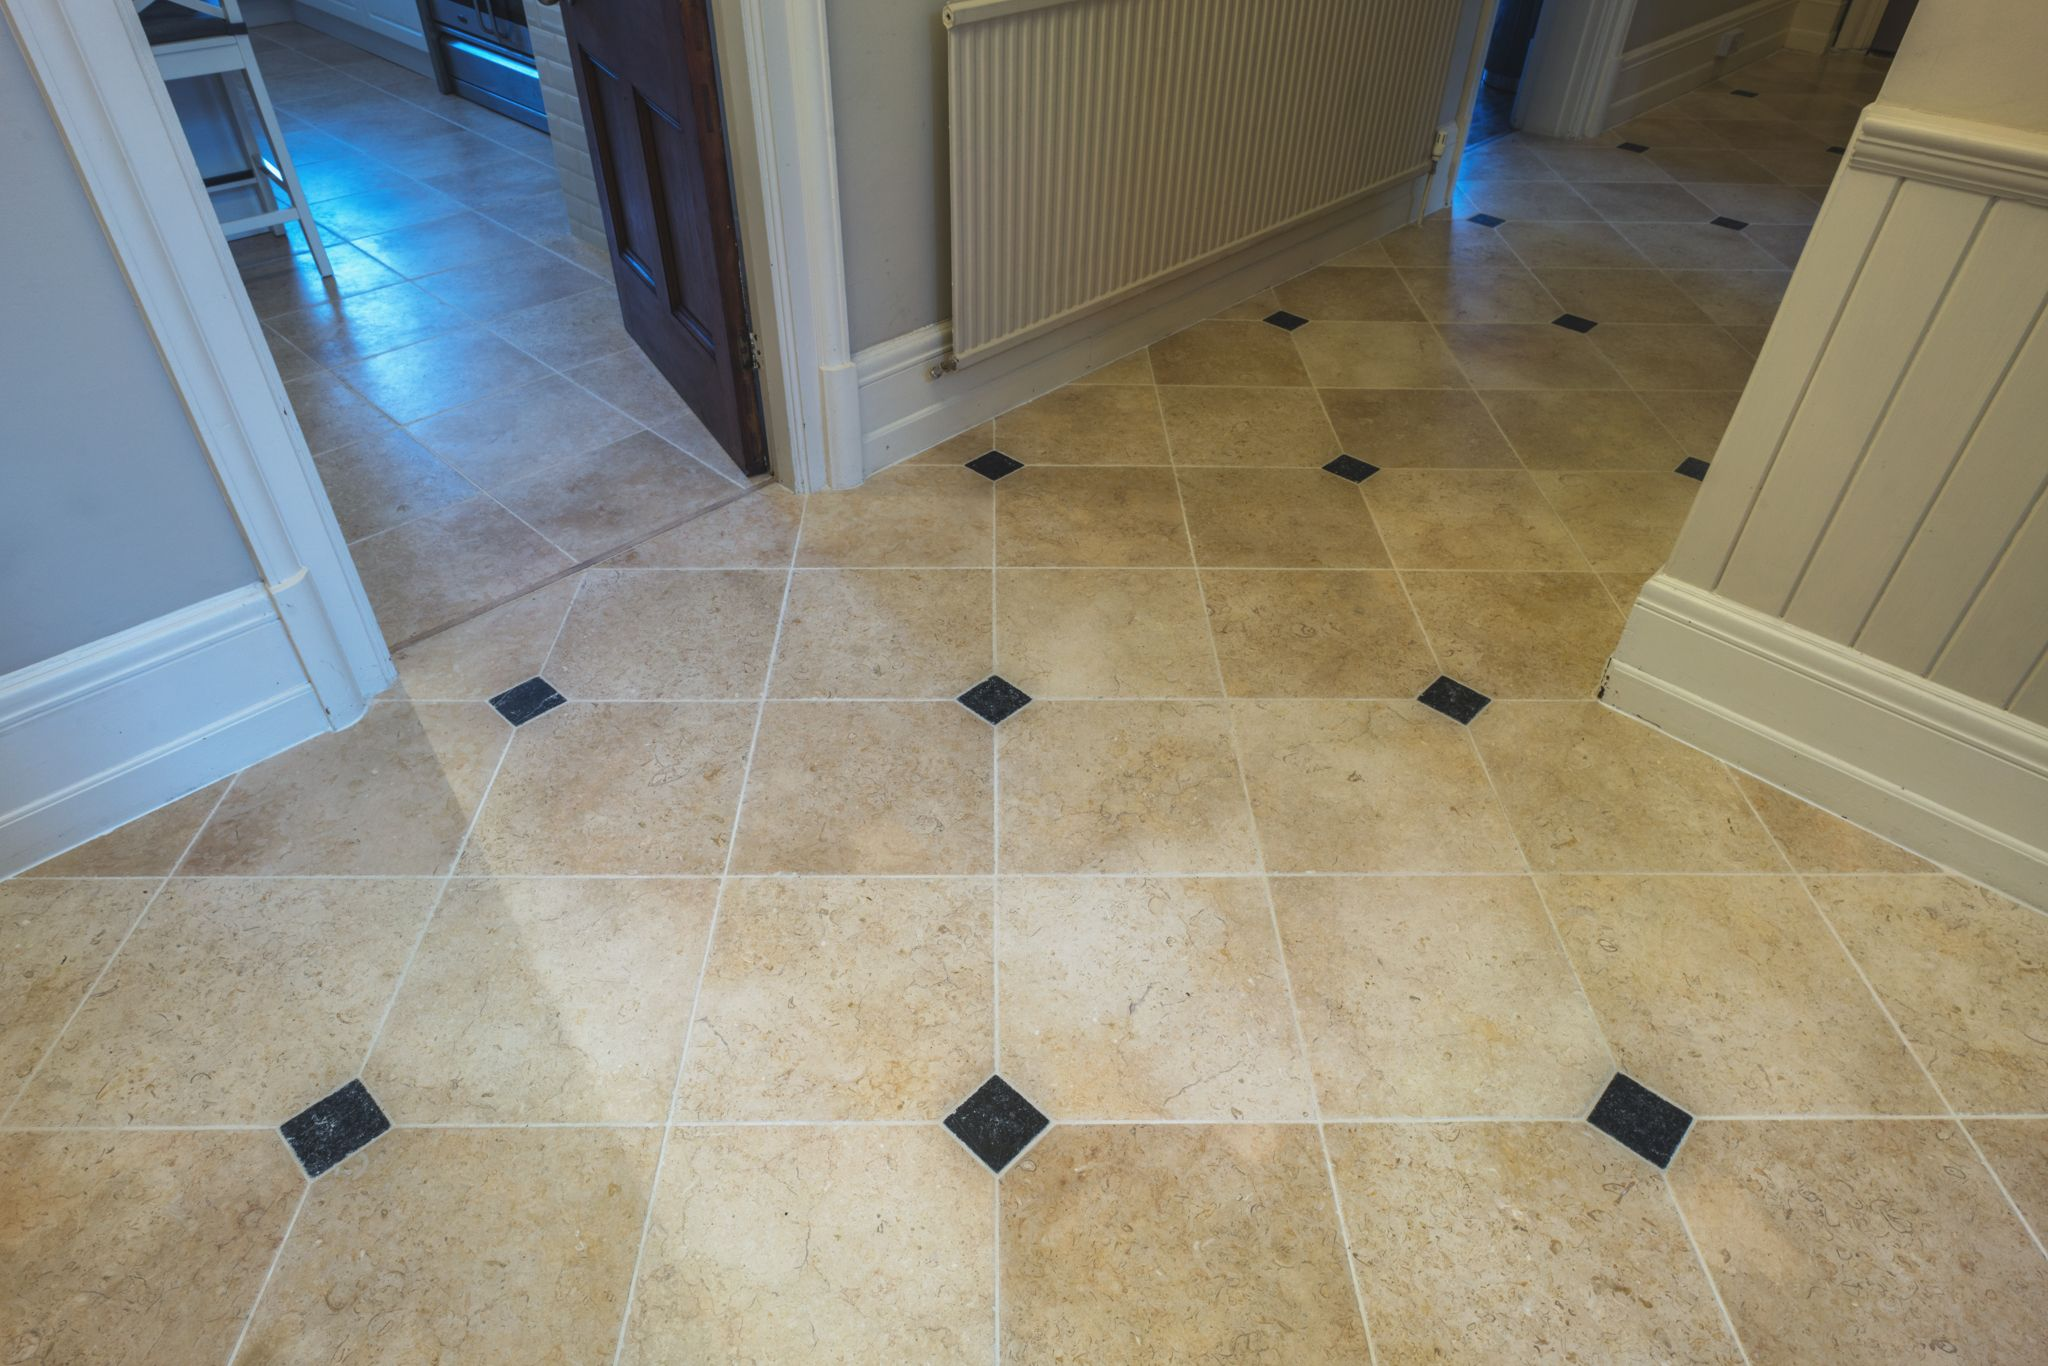 Papyrus Tumbled 40 X 40 Stone Floor Tiles With 1 Clipped Corner And